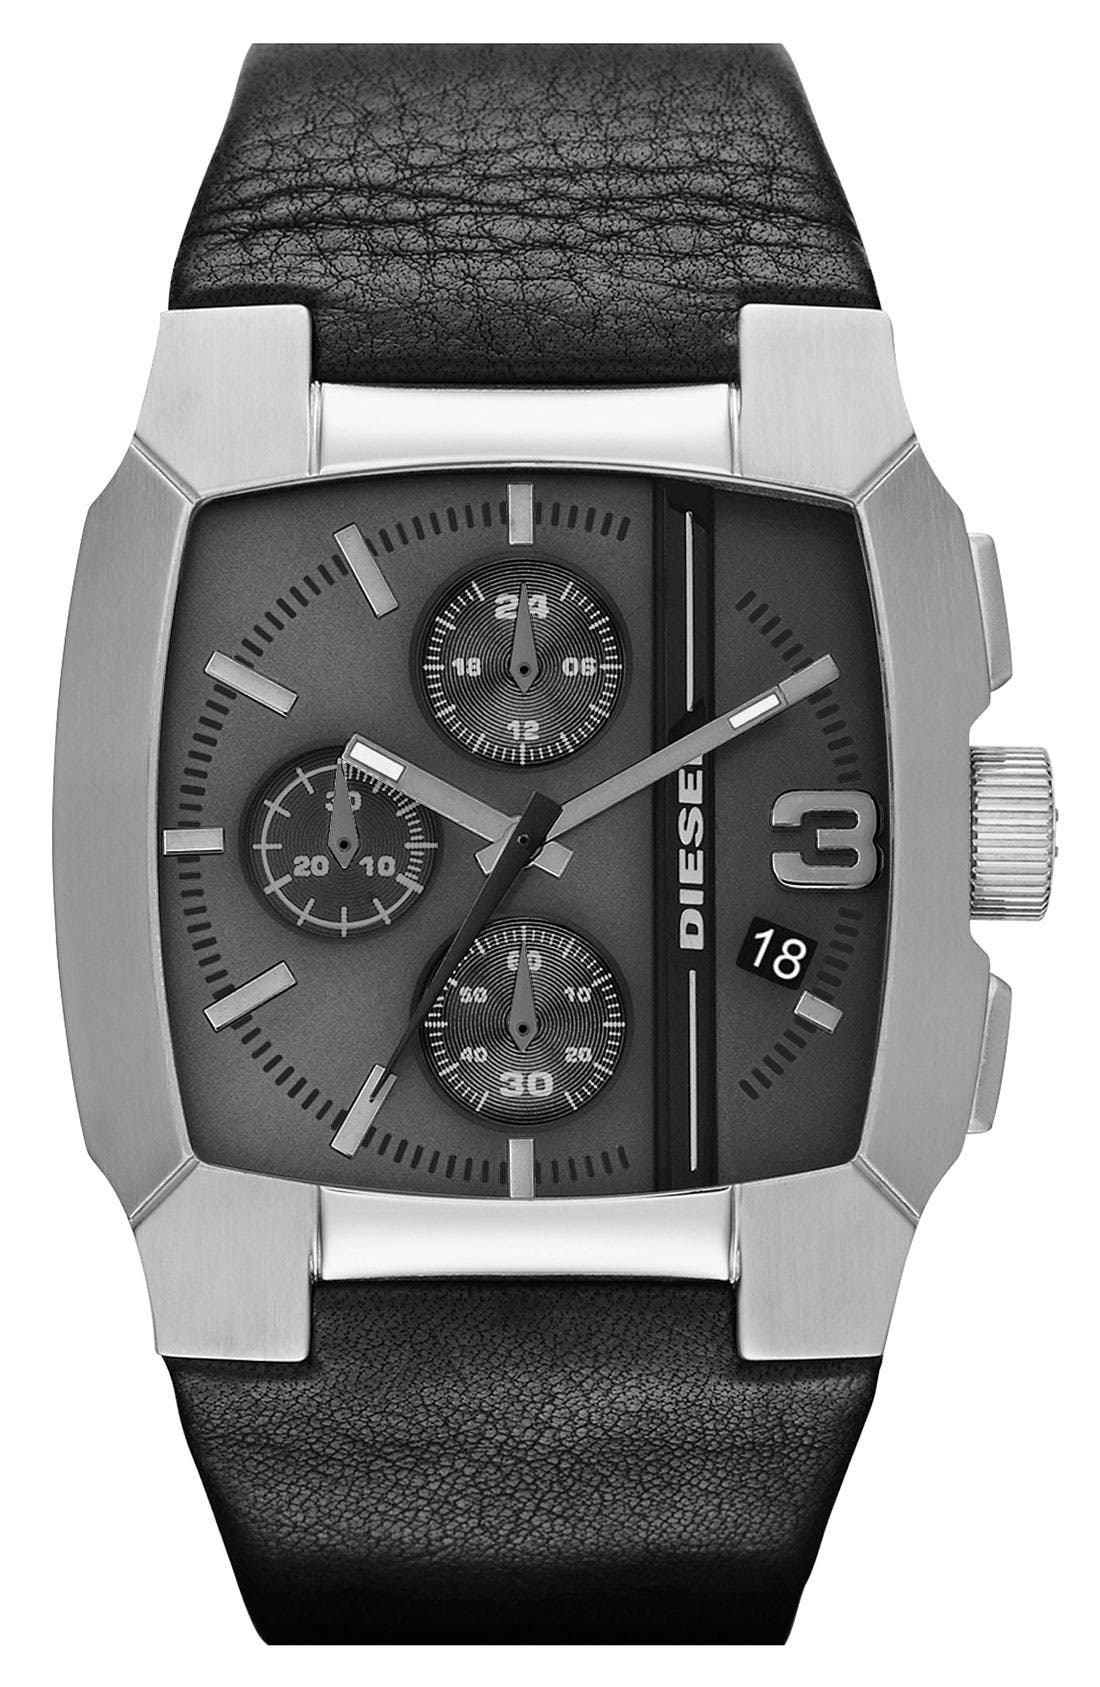 Main Image - DIESEL® Square Leather Strap Watch, 47mm x 40mm